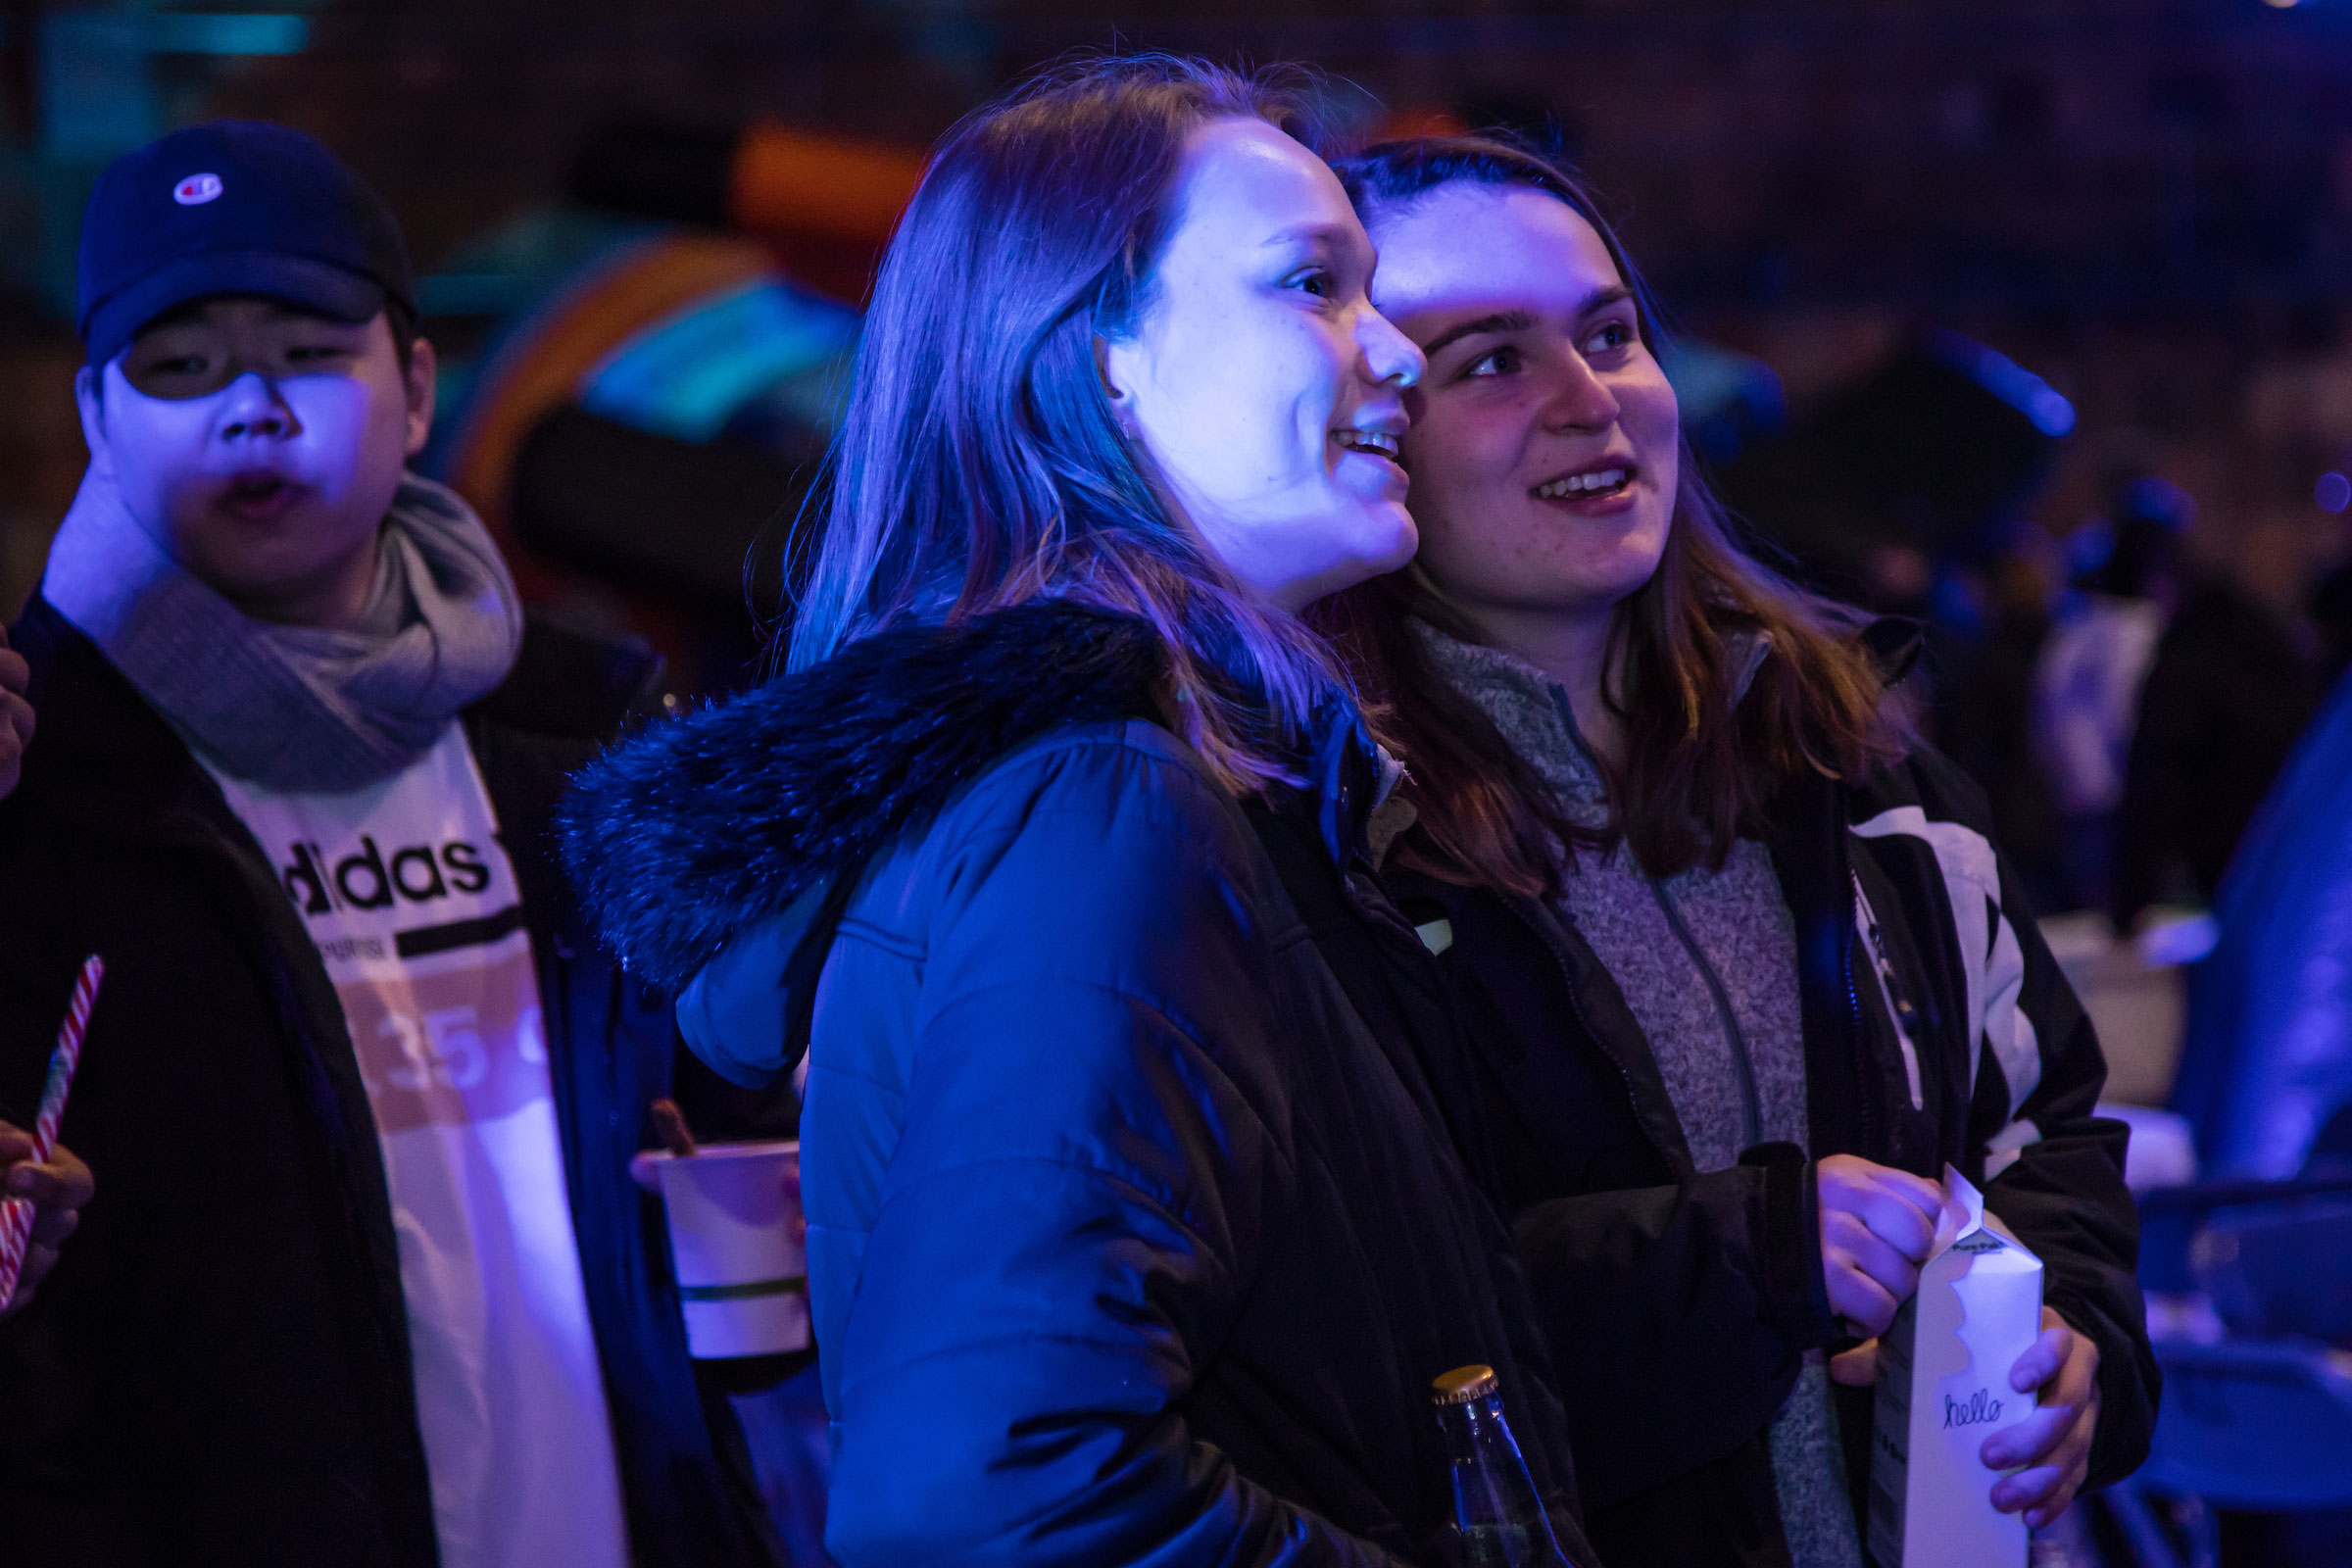 Two friends enjoying watching the activities at Winter Fest